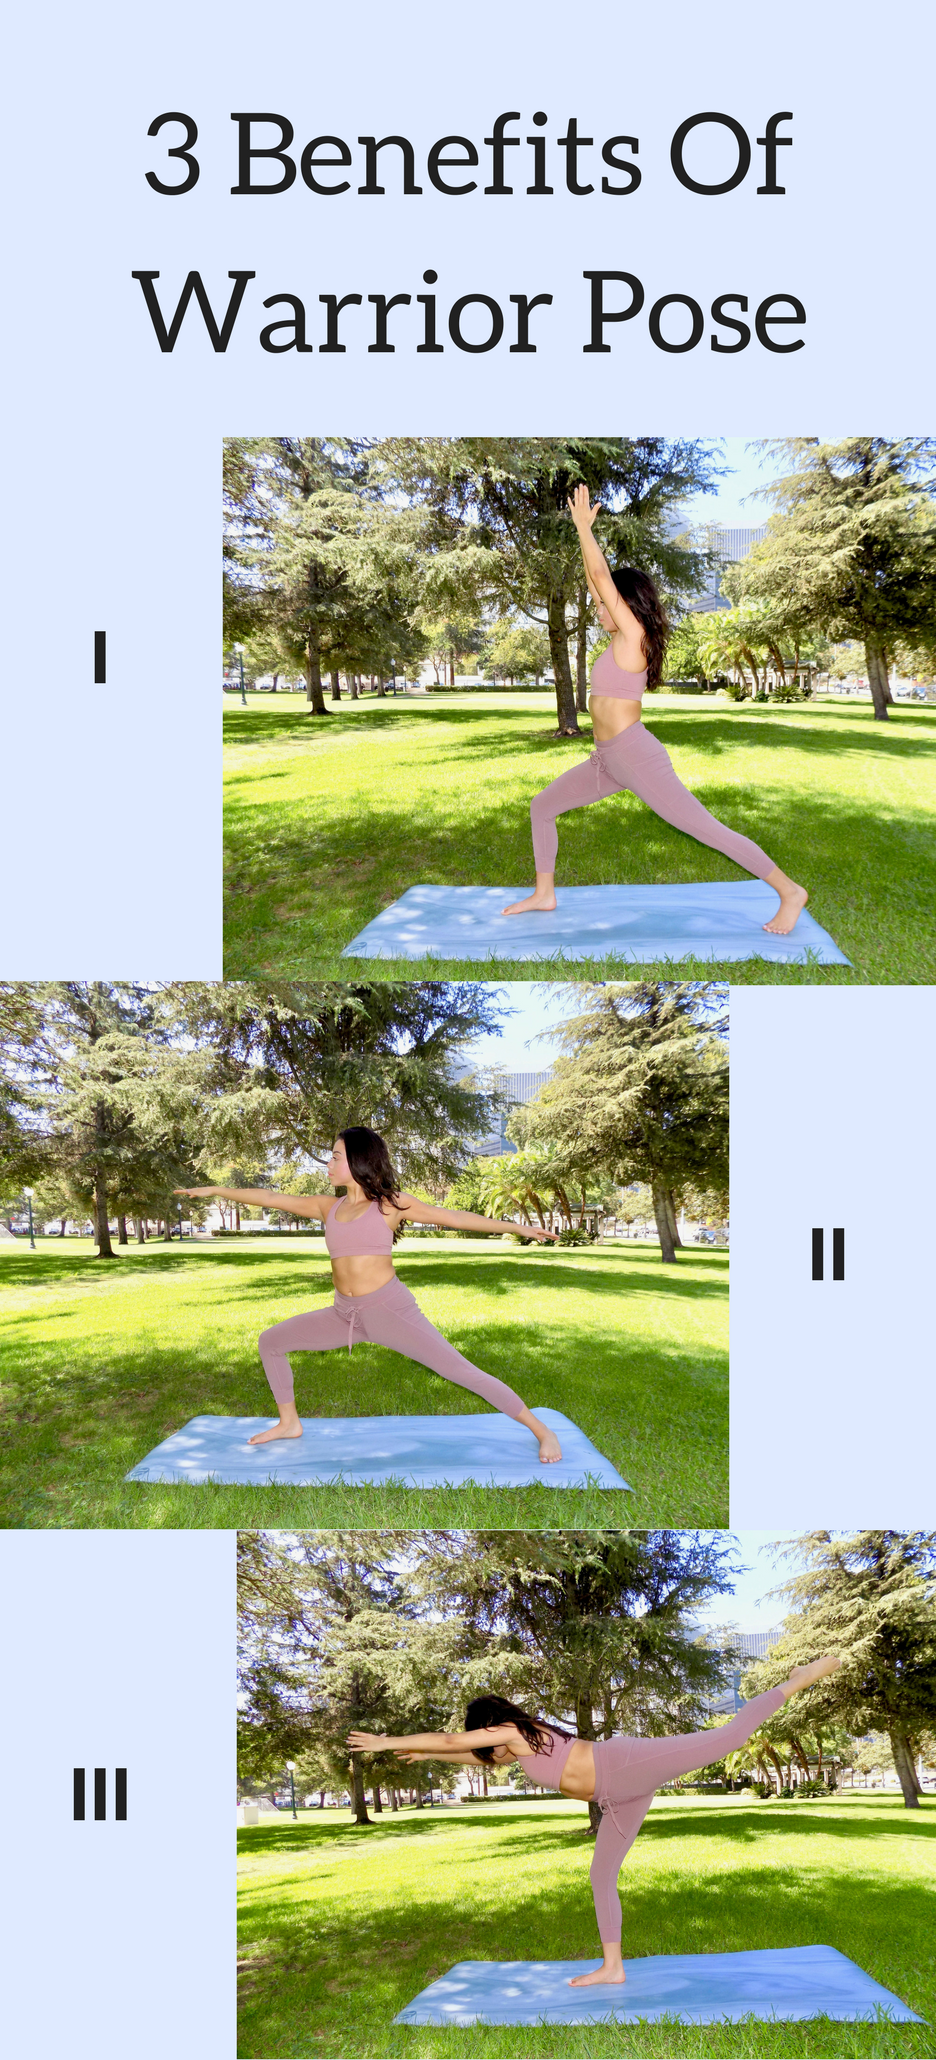 3 Benefits Of Warrior Pose I, II, III Warrior pose